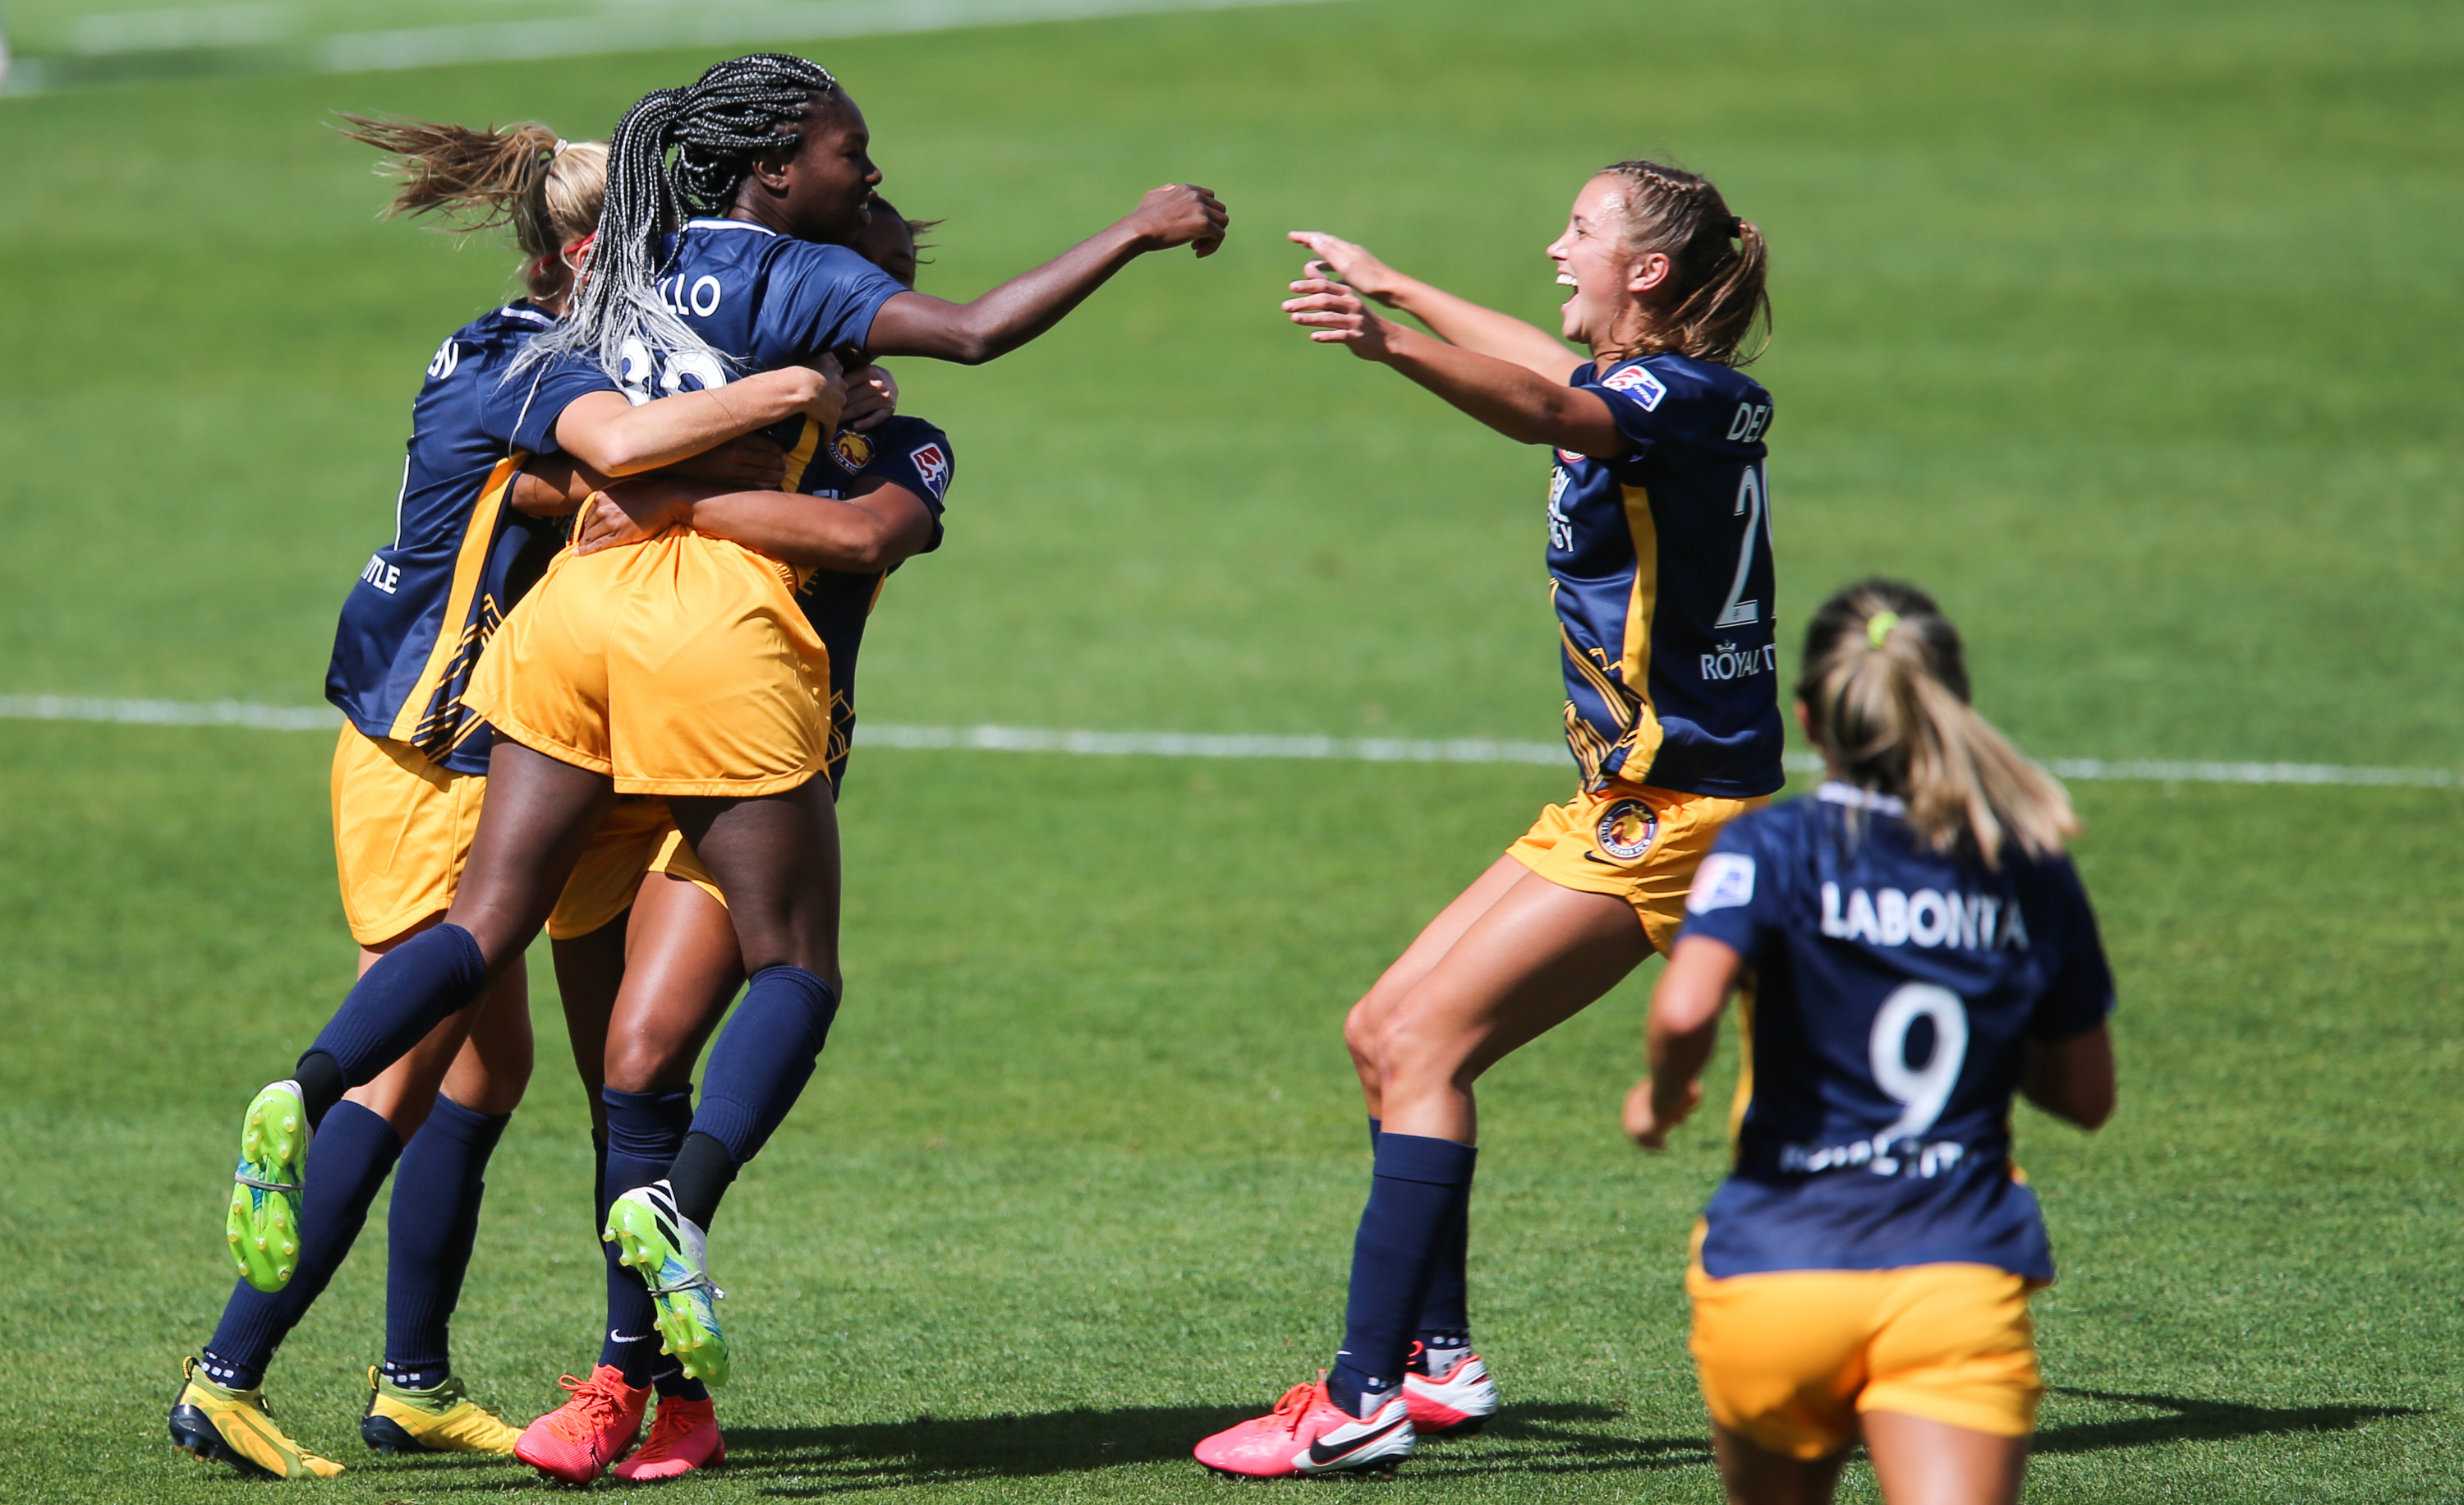 Utah Royals FC players celebrate as Aminata Diallo (38) scores the first goal during a NWSL soccer game at Rio Tinto Stadium in Sandy on Saturday, Sept. 26, 2020.